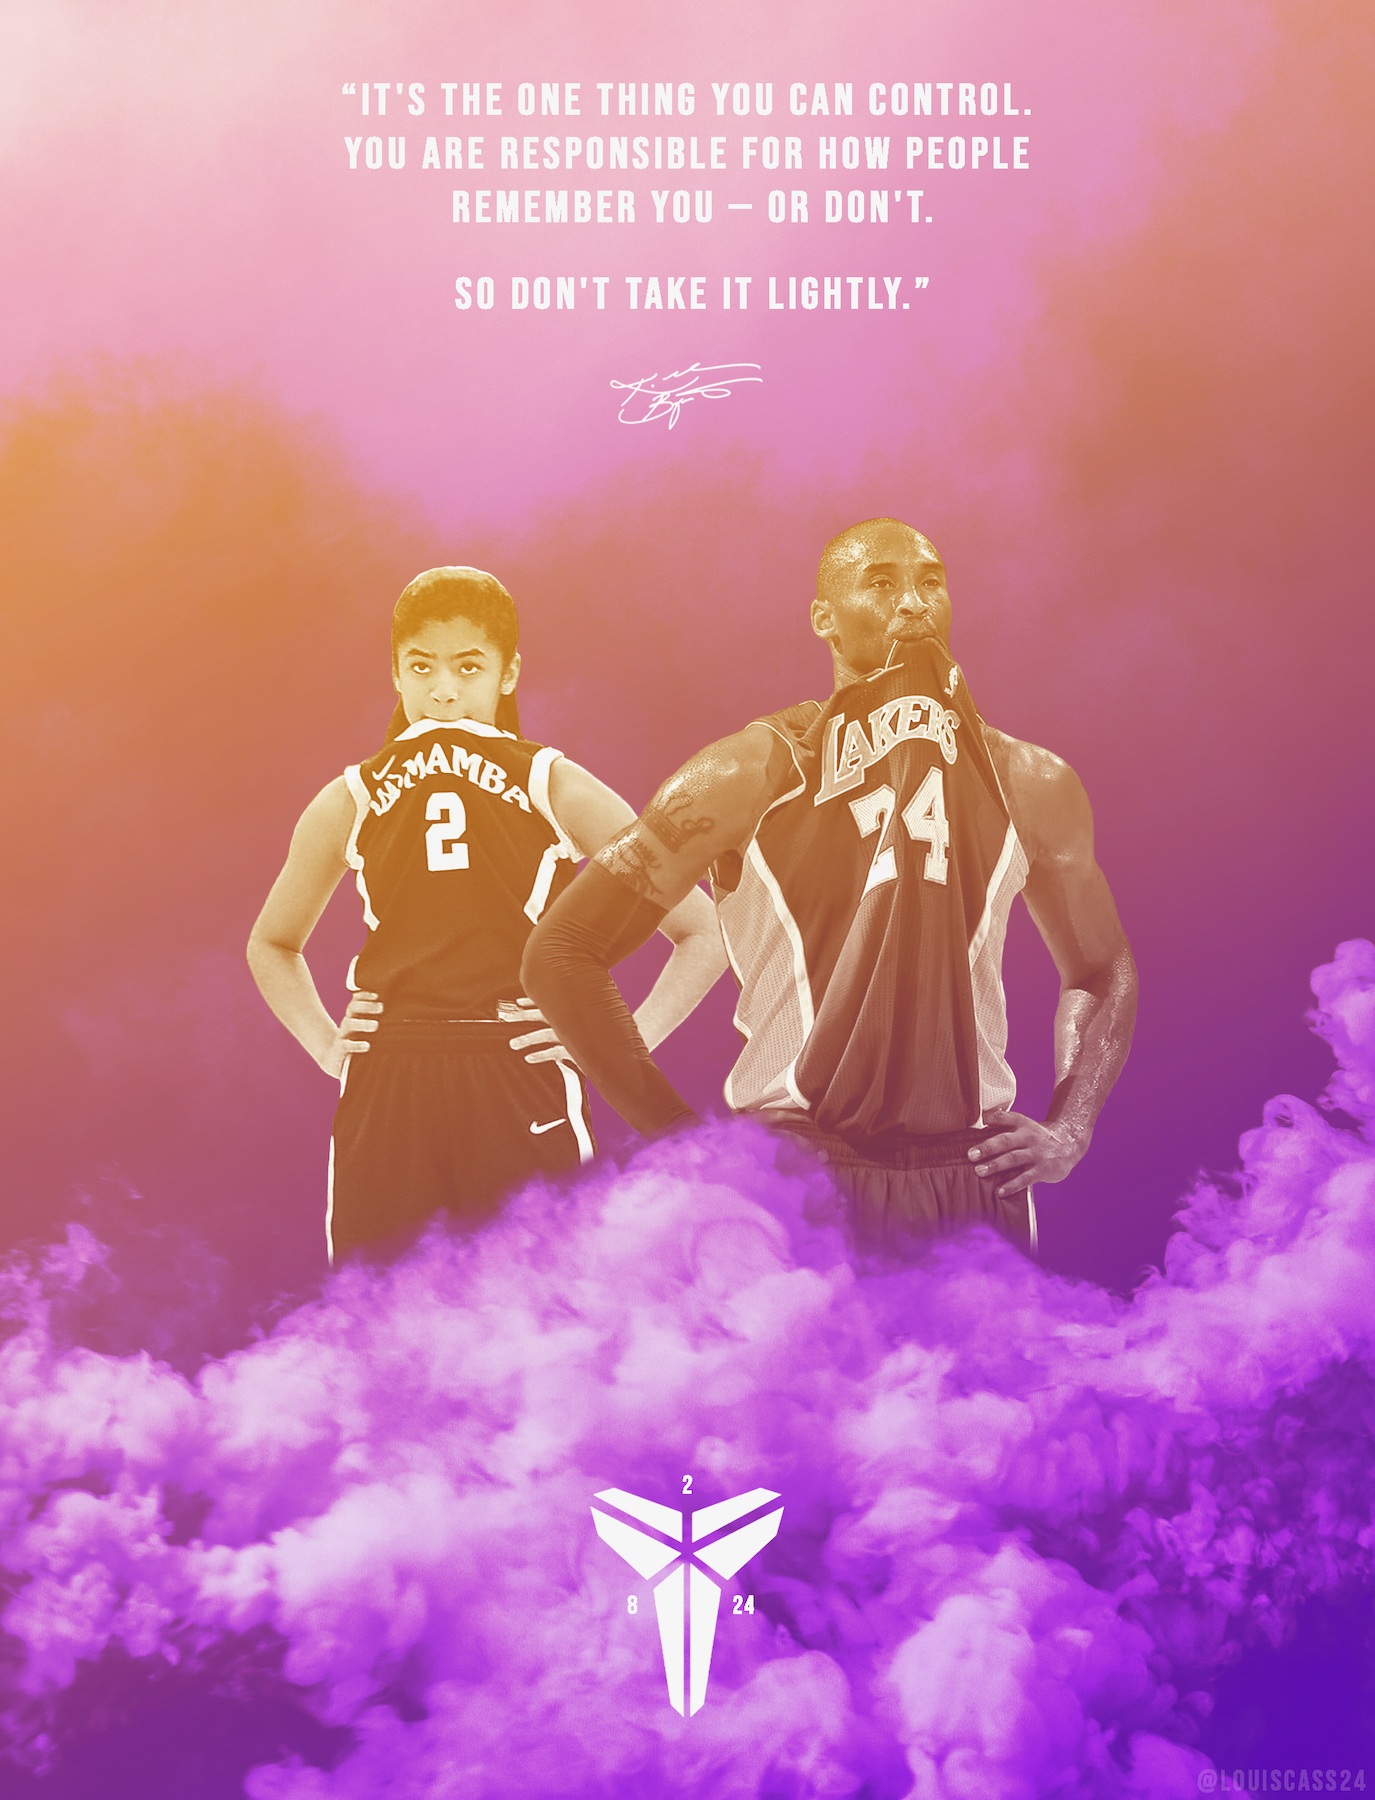 [Image] Made a tribute to the Mambas last night featuring my favorite quote from Kobe